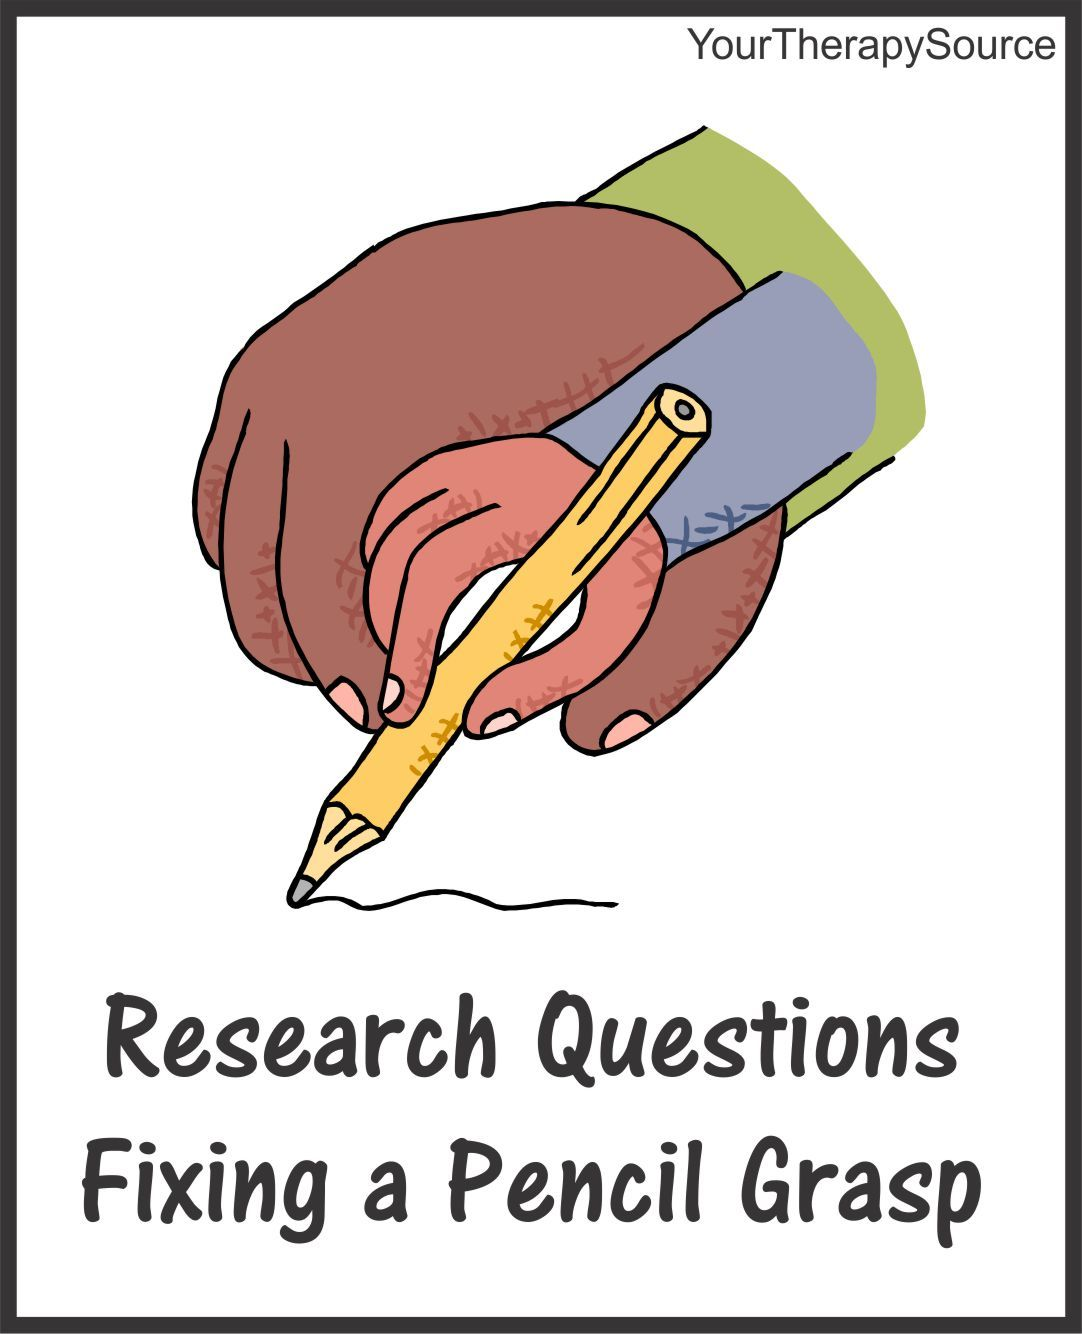 Pencil Grasp And Handwriting Researchers Questions Whether Or Not To Change The Way Kids Hold